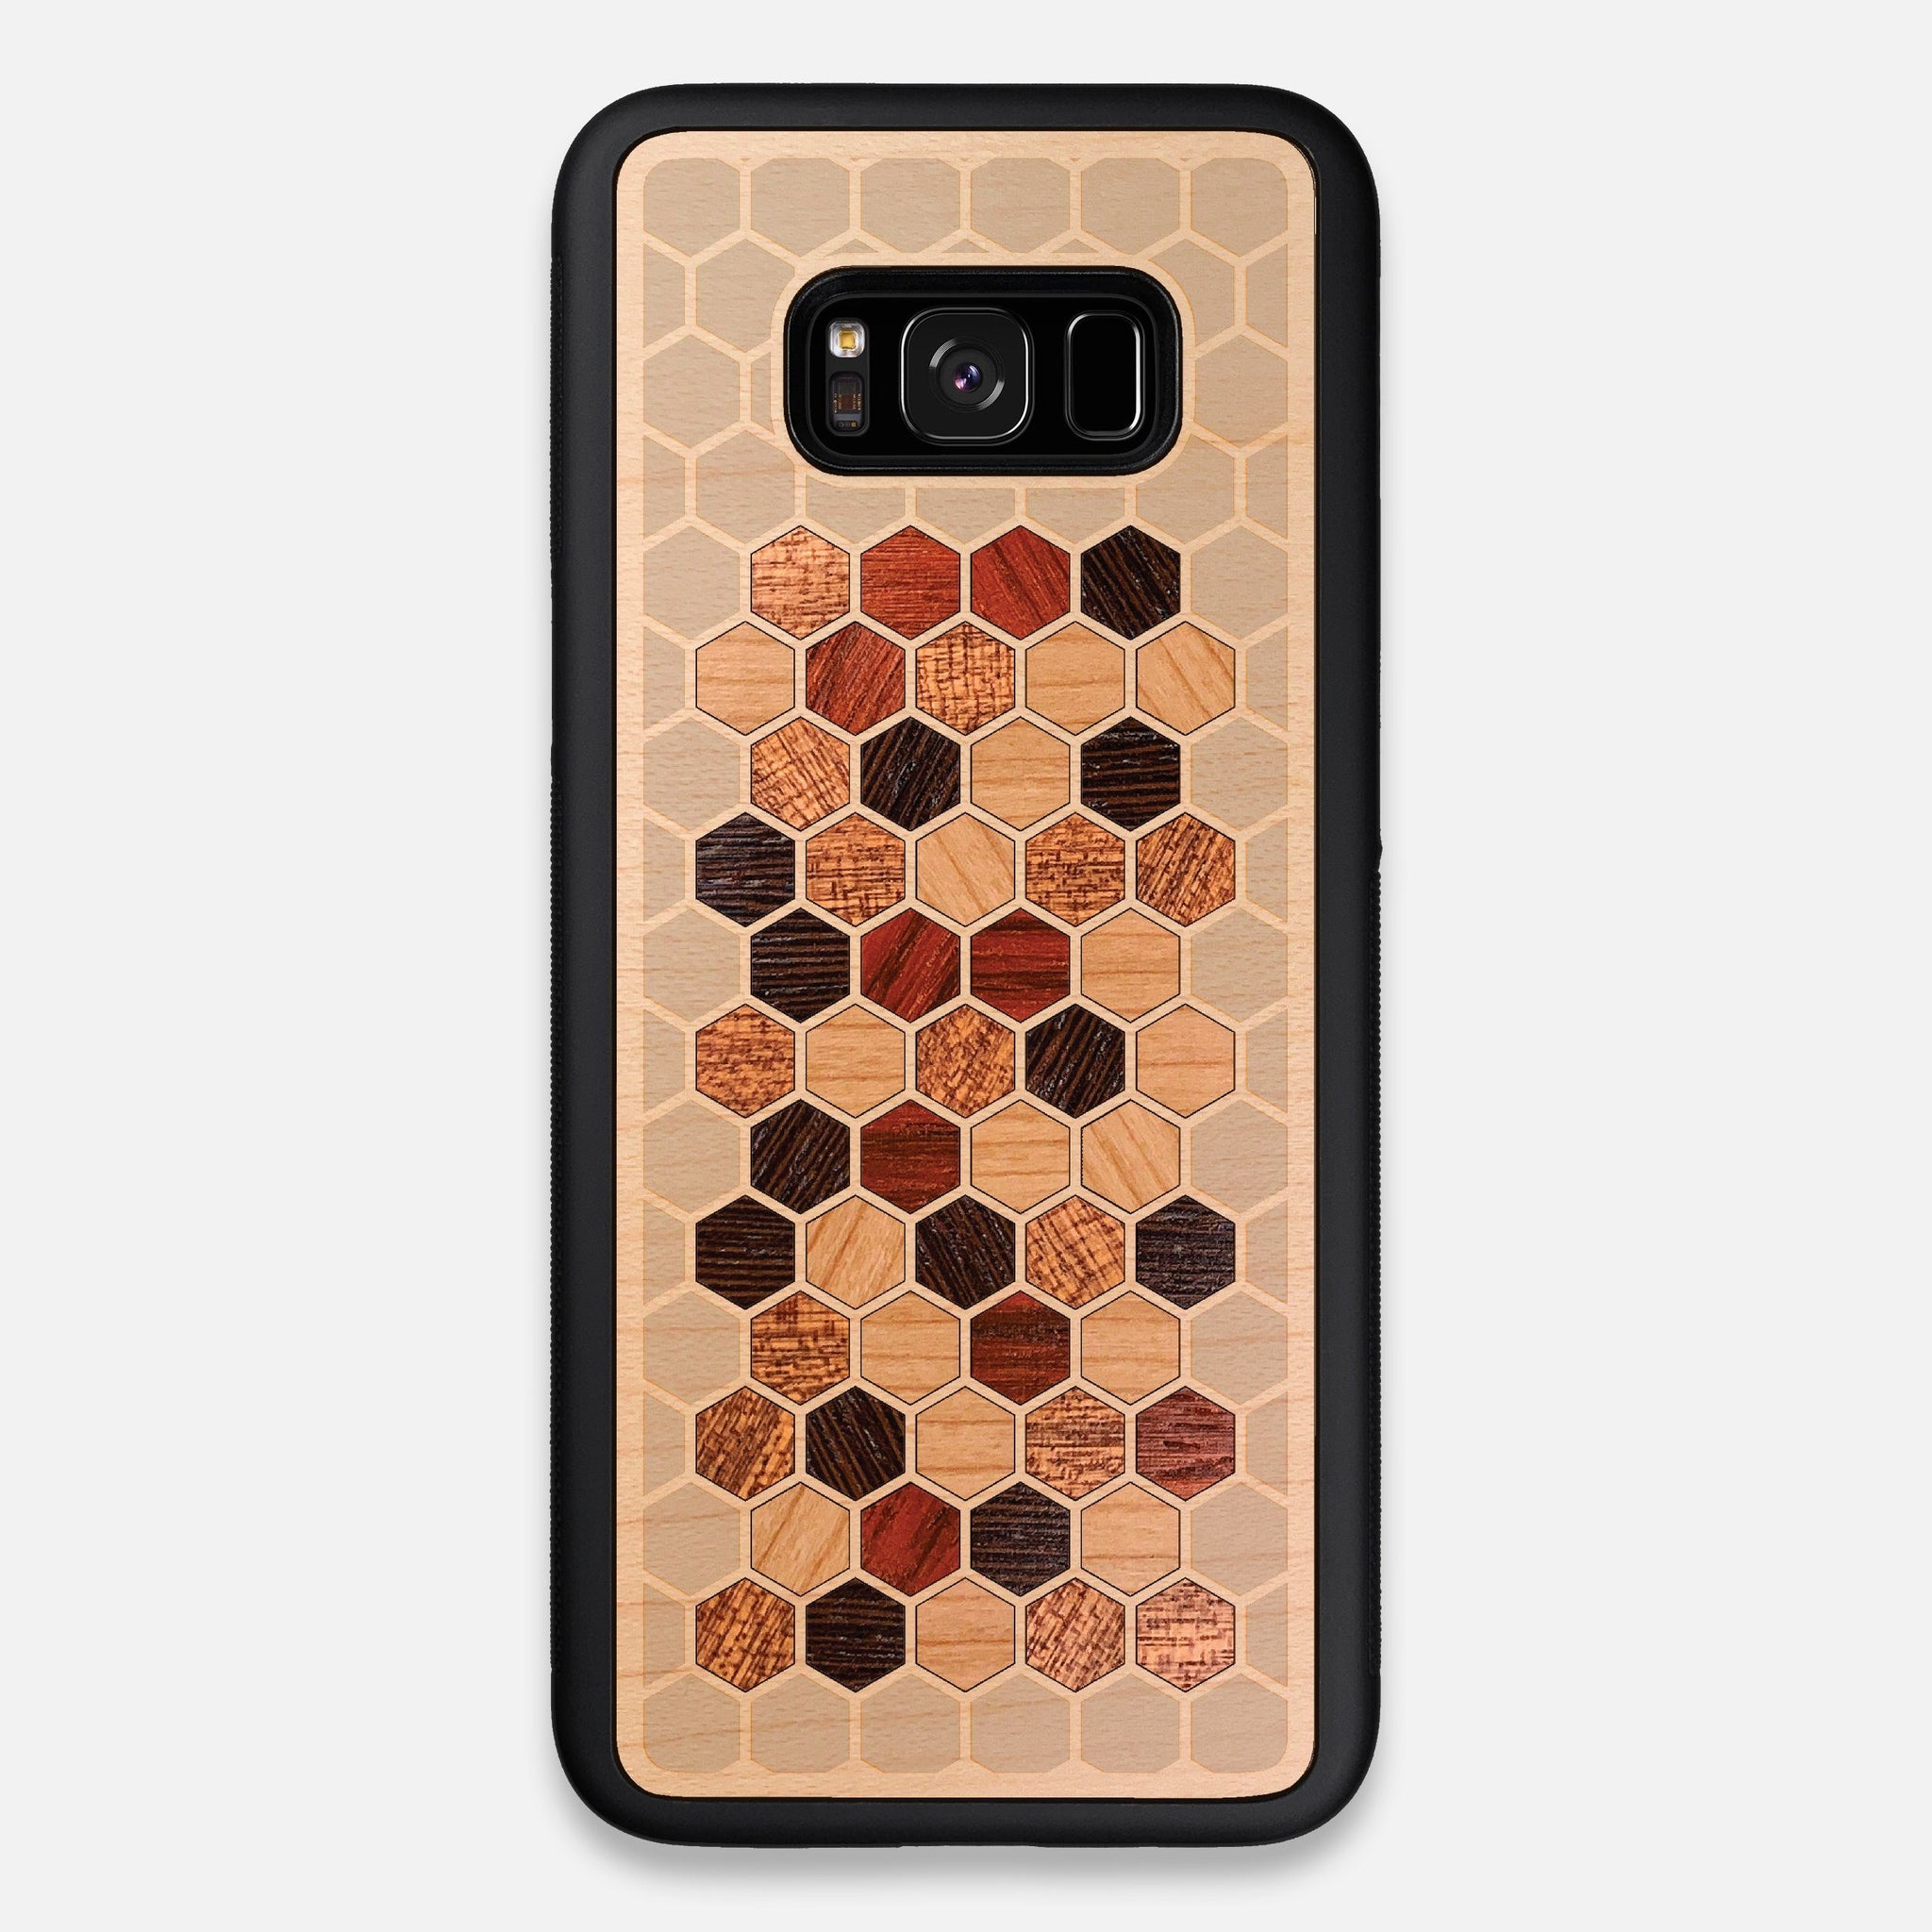 Front view of the Cellular Maple Wood Galaxy S8+ Case by Keyway Designs